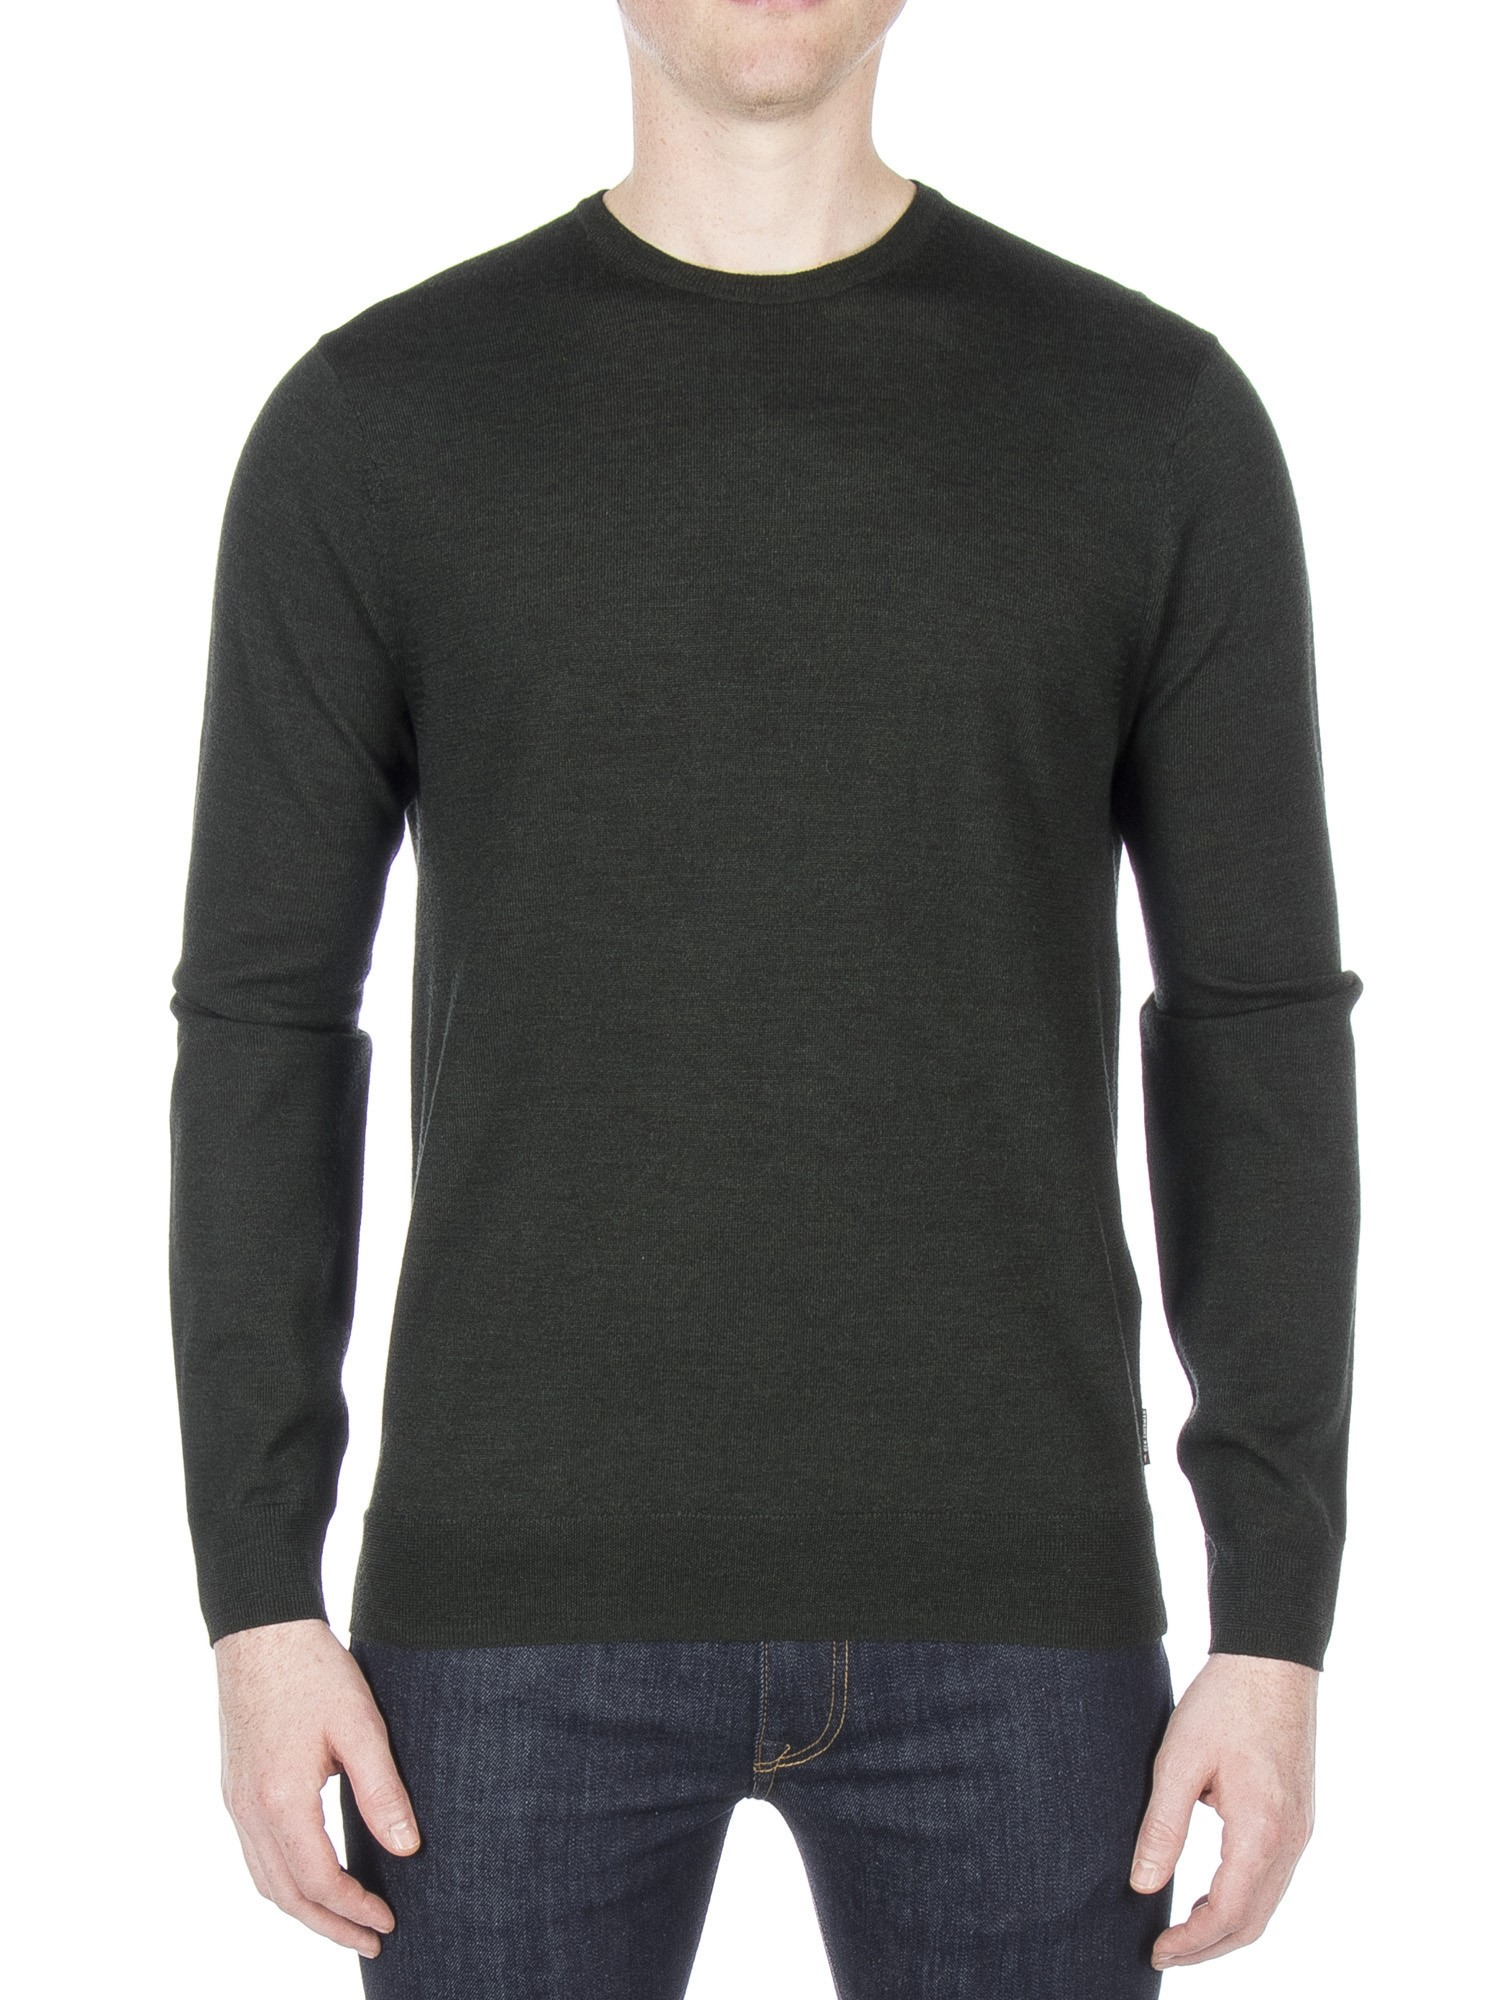 Ben Sherman PEAT GREEN MARL Merino Crew Neck Jumper